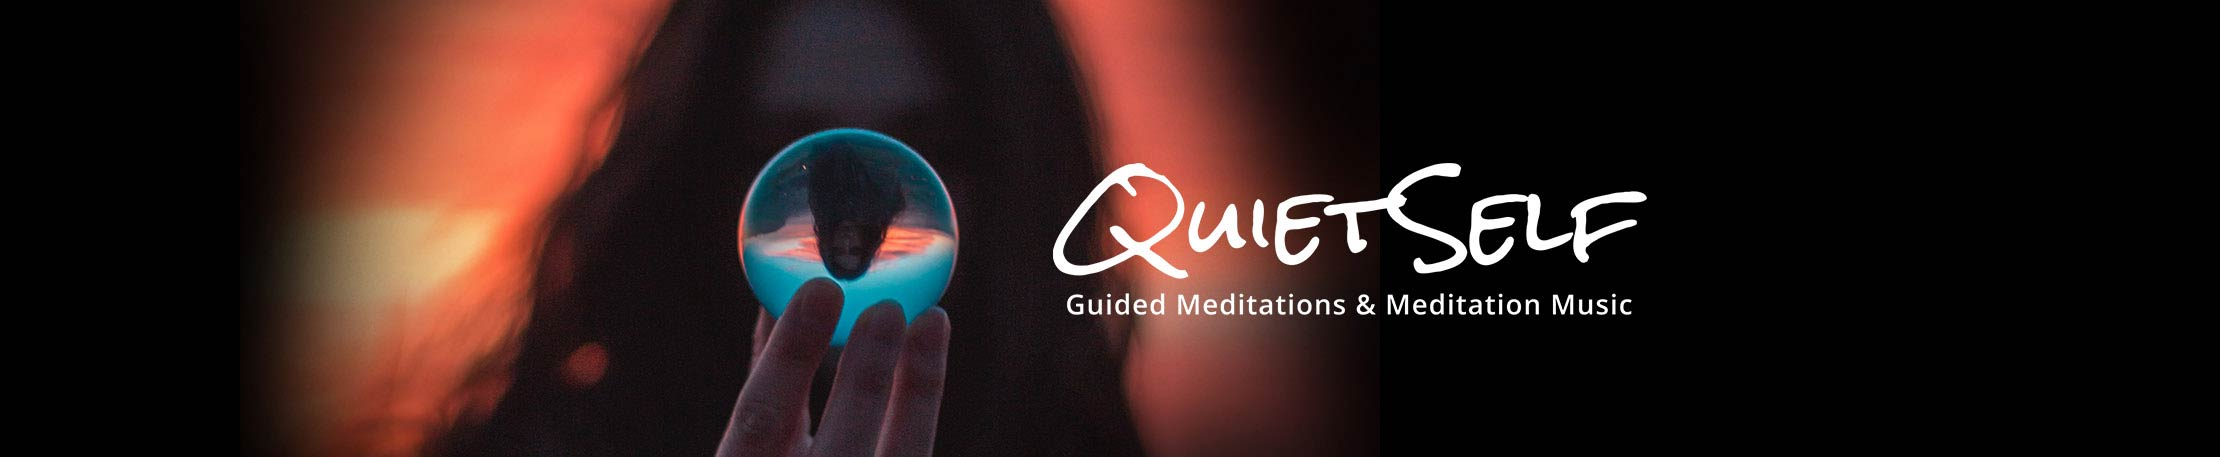 QuietSelf: Guided Meditations & Meditation Music